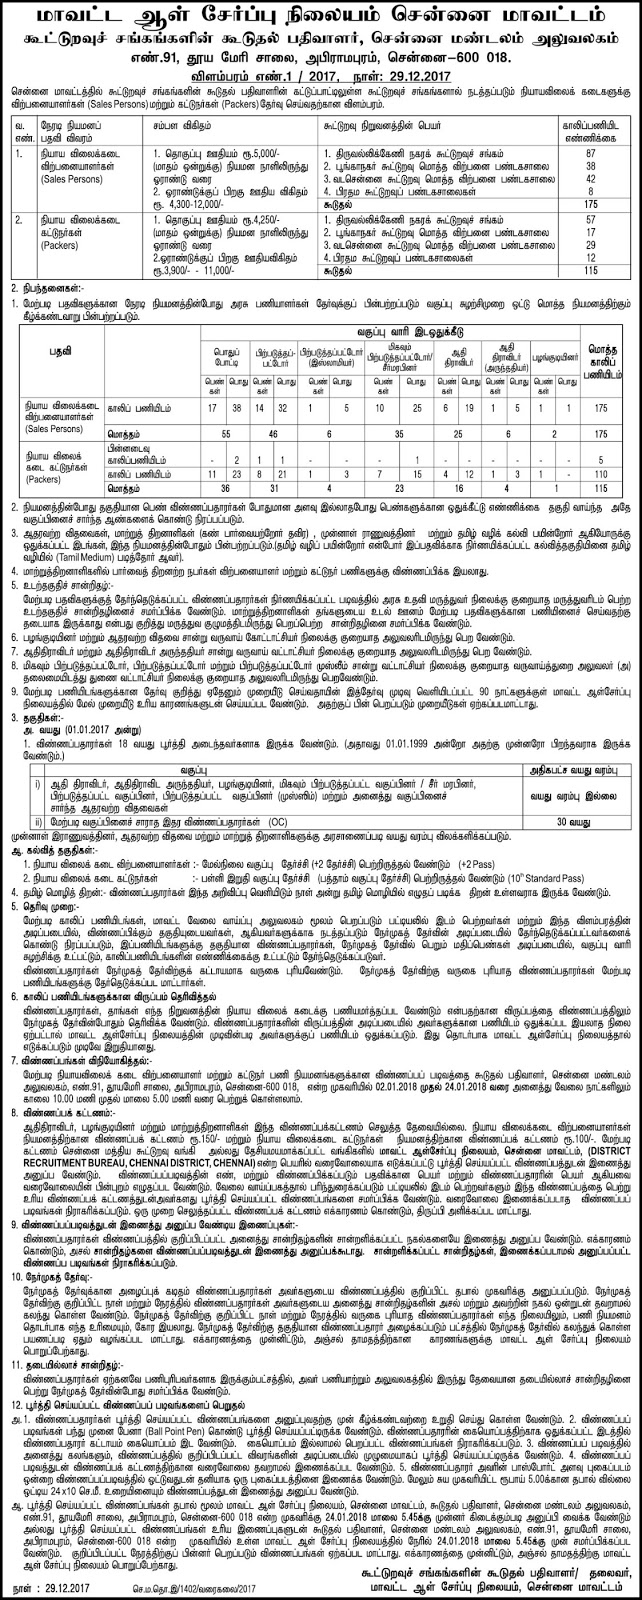 Chennai Ration Shop Sales Persons, Packers Notification 30.12.2017 (290 Vacancy)